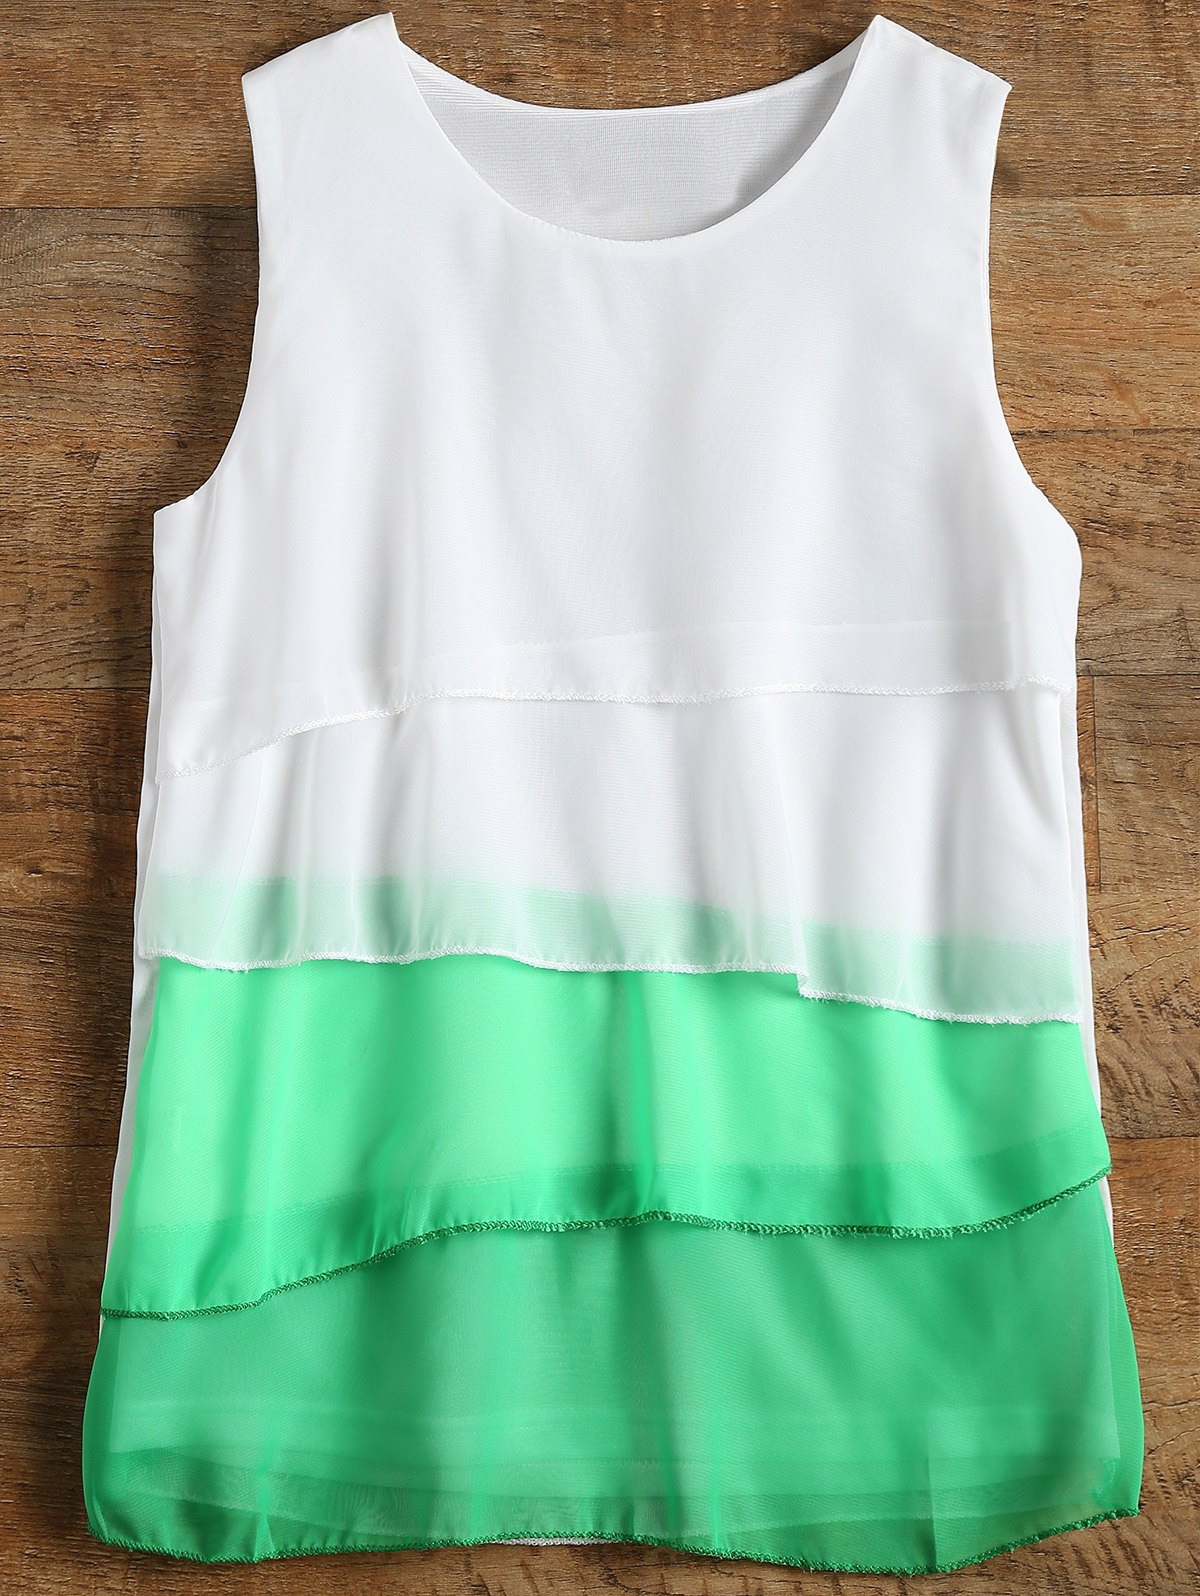 Sleeveless Tiered Color Block Blouse - GREEN L